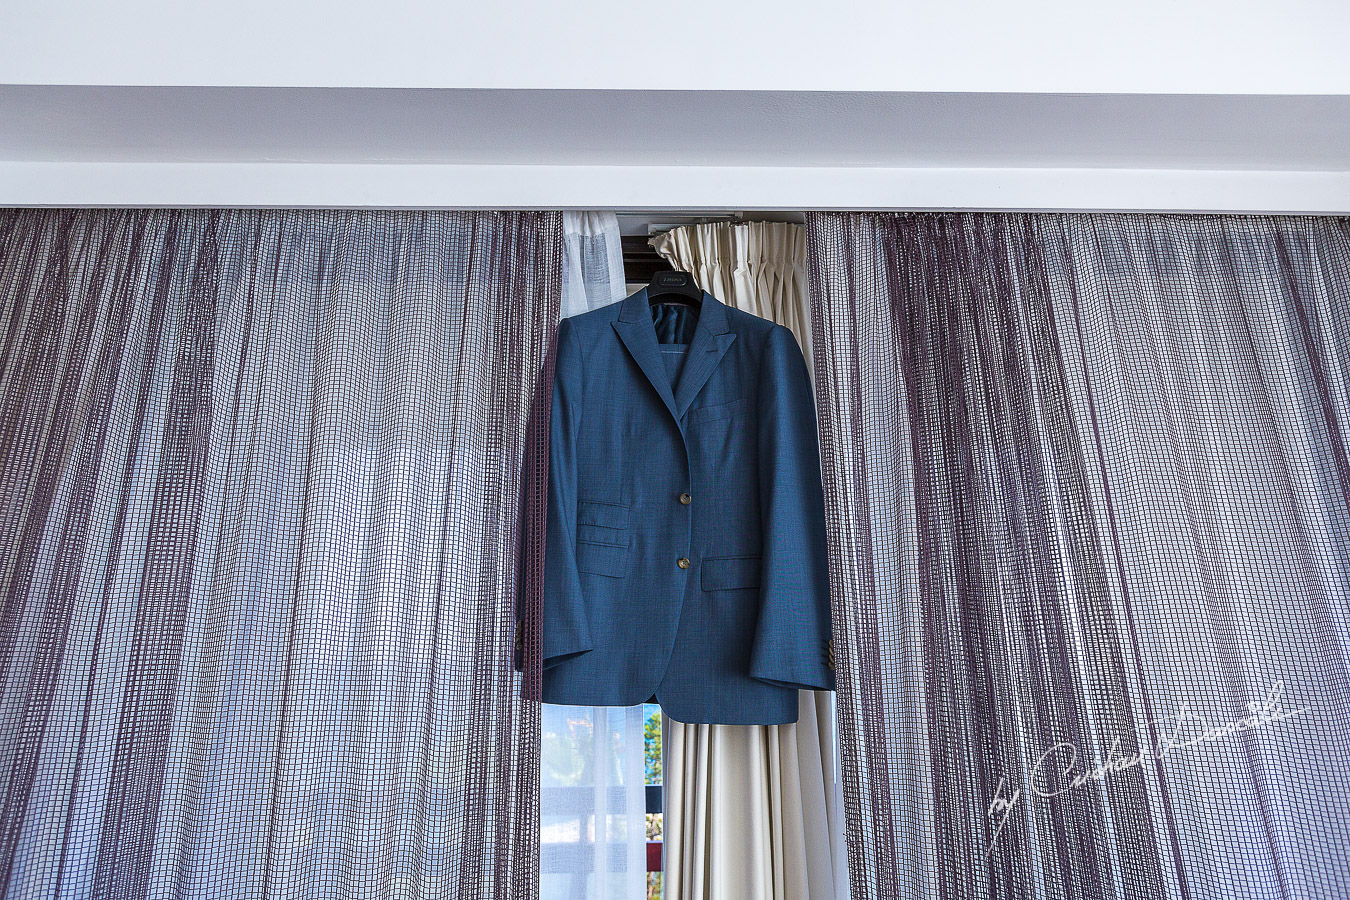 Groom's suit hanged to be photographed at Londa Hotel in Limassol, Cyprus